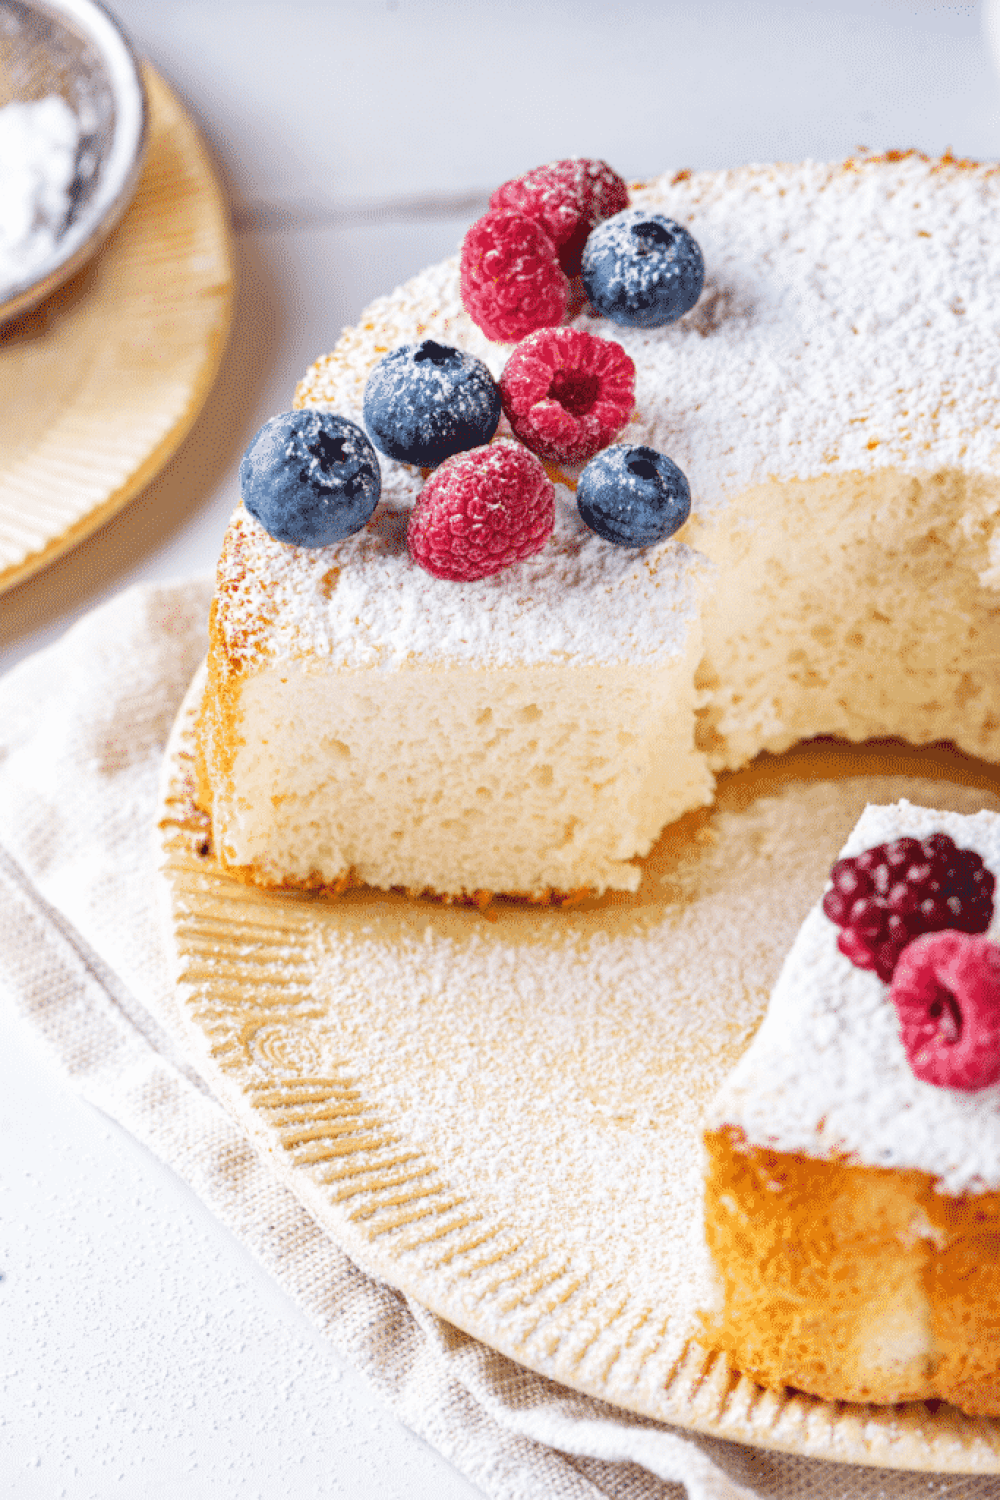 An angel food cake on a plate with a piece cut out of the front of the cake. There are blueberries and raspberries along with powdered sugar on top of the cake.